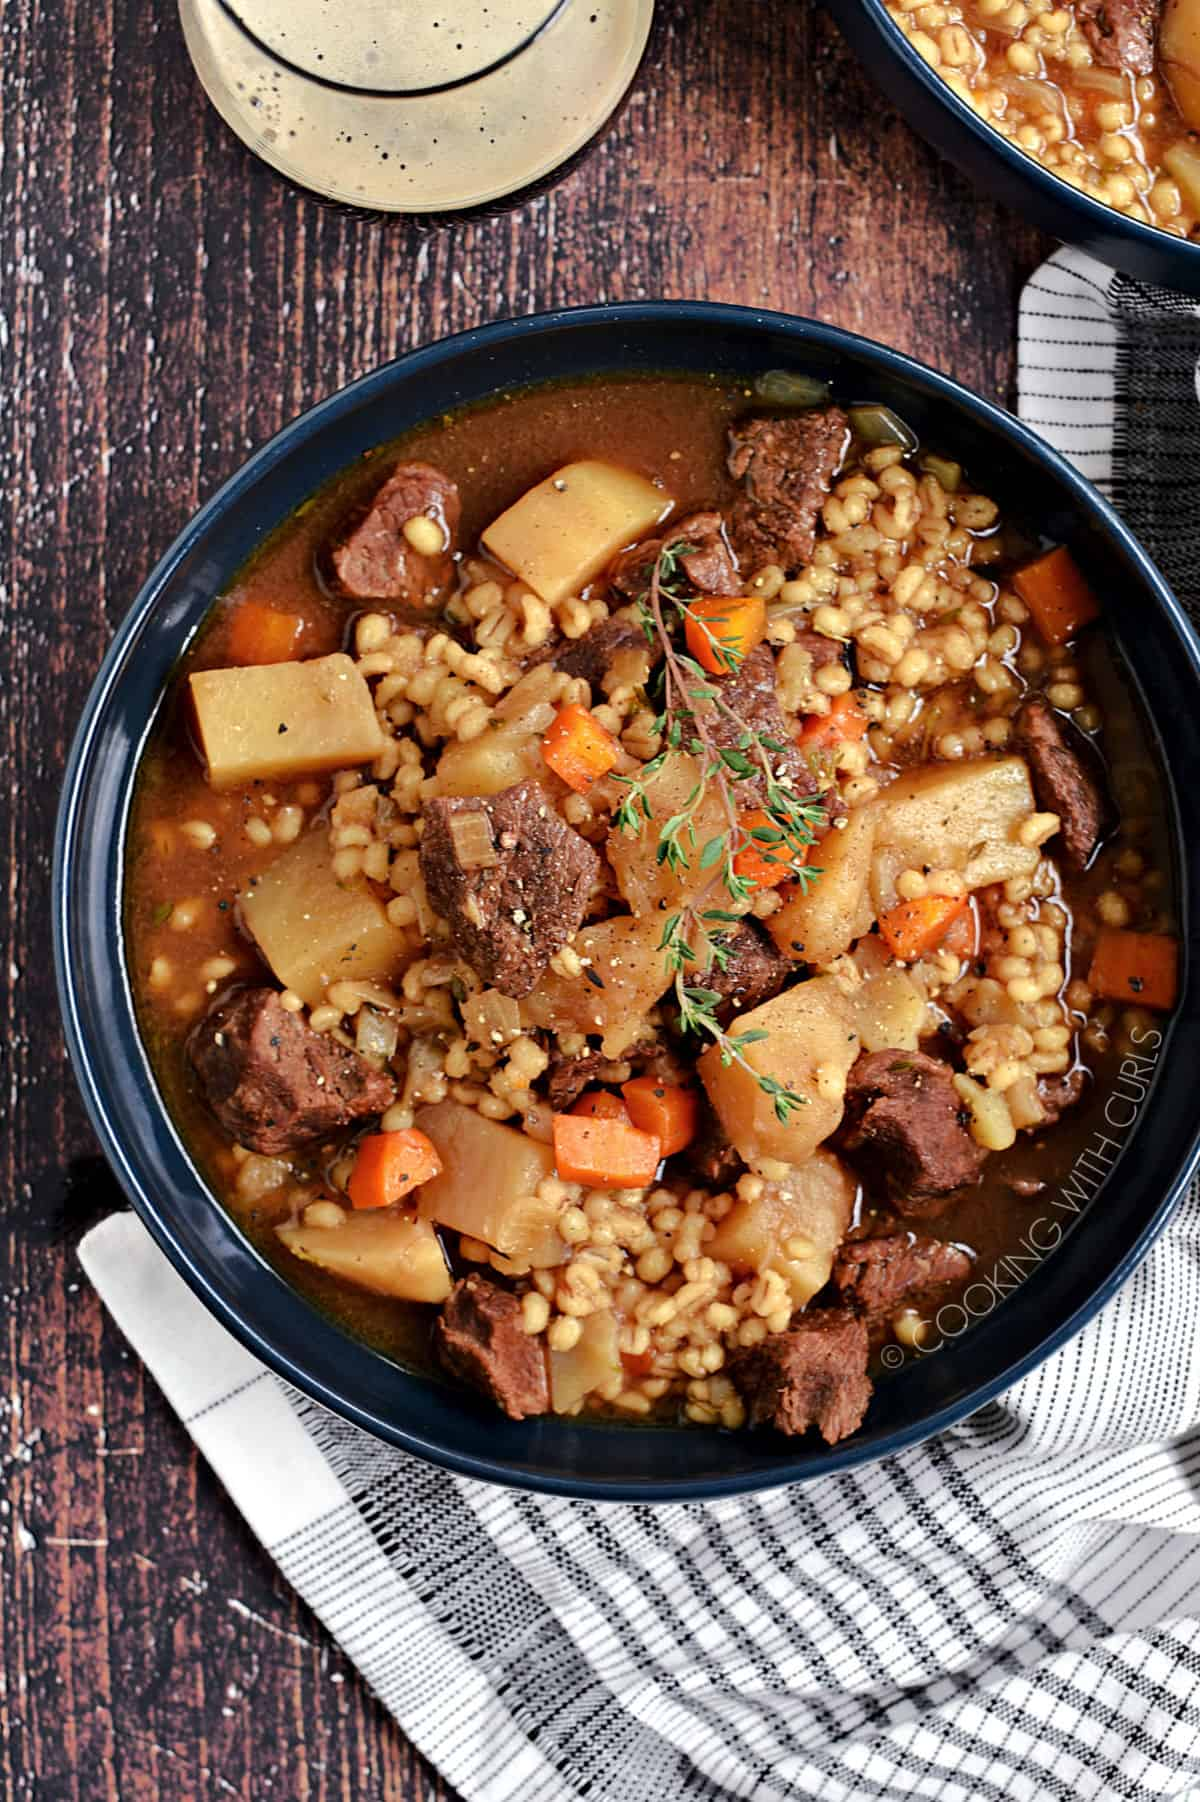 Looking down on a big blue bowl of beef, potato and carrots chunks surrounds by broth and barley.